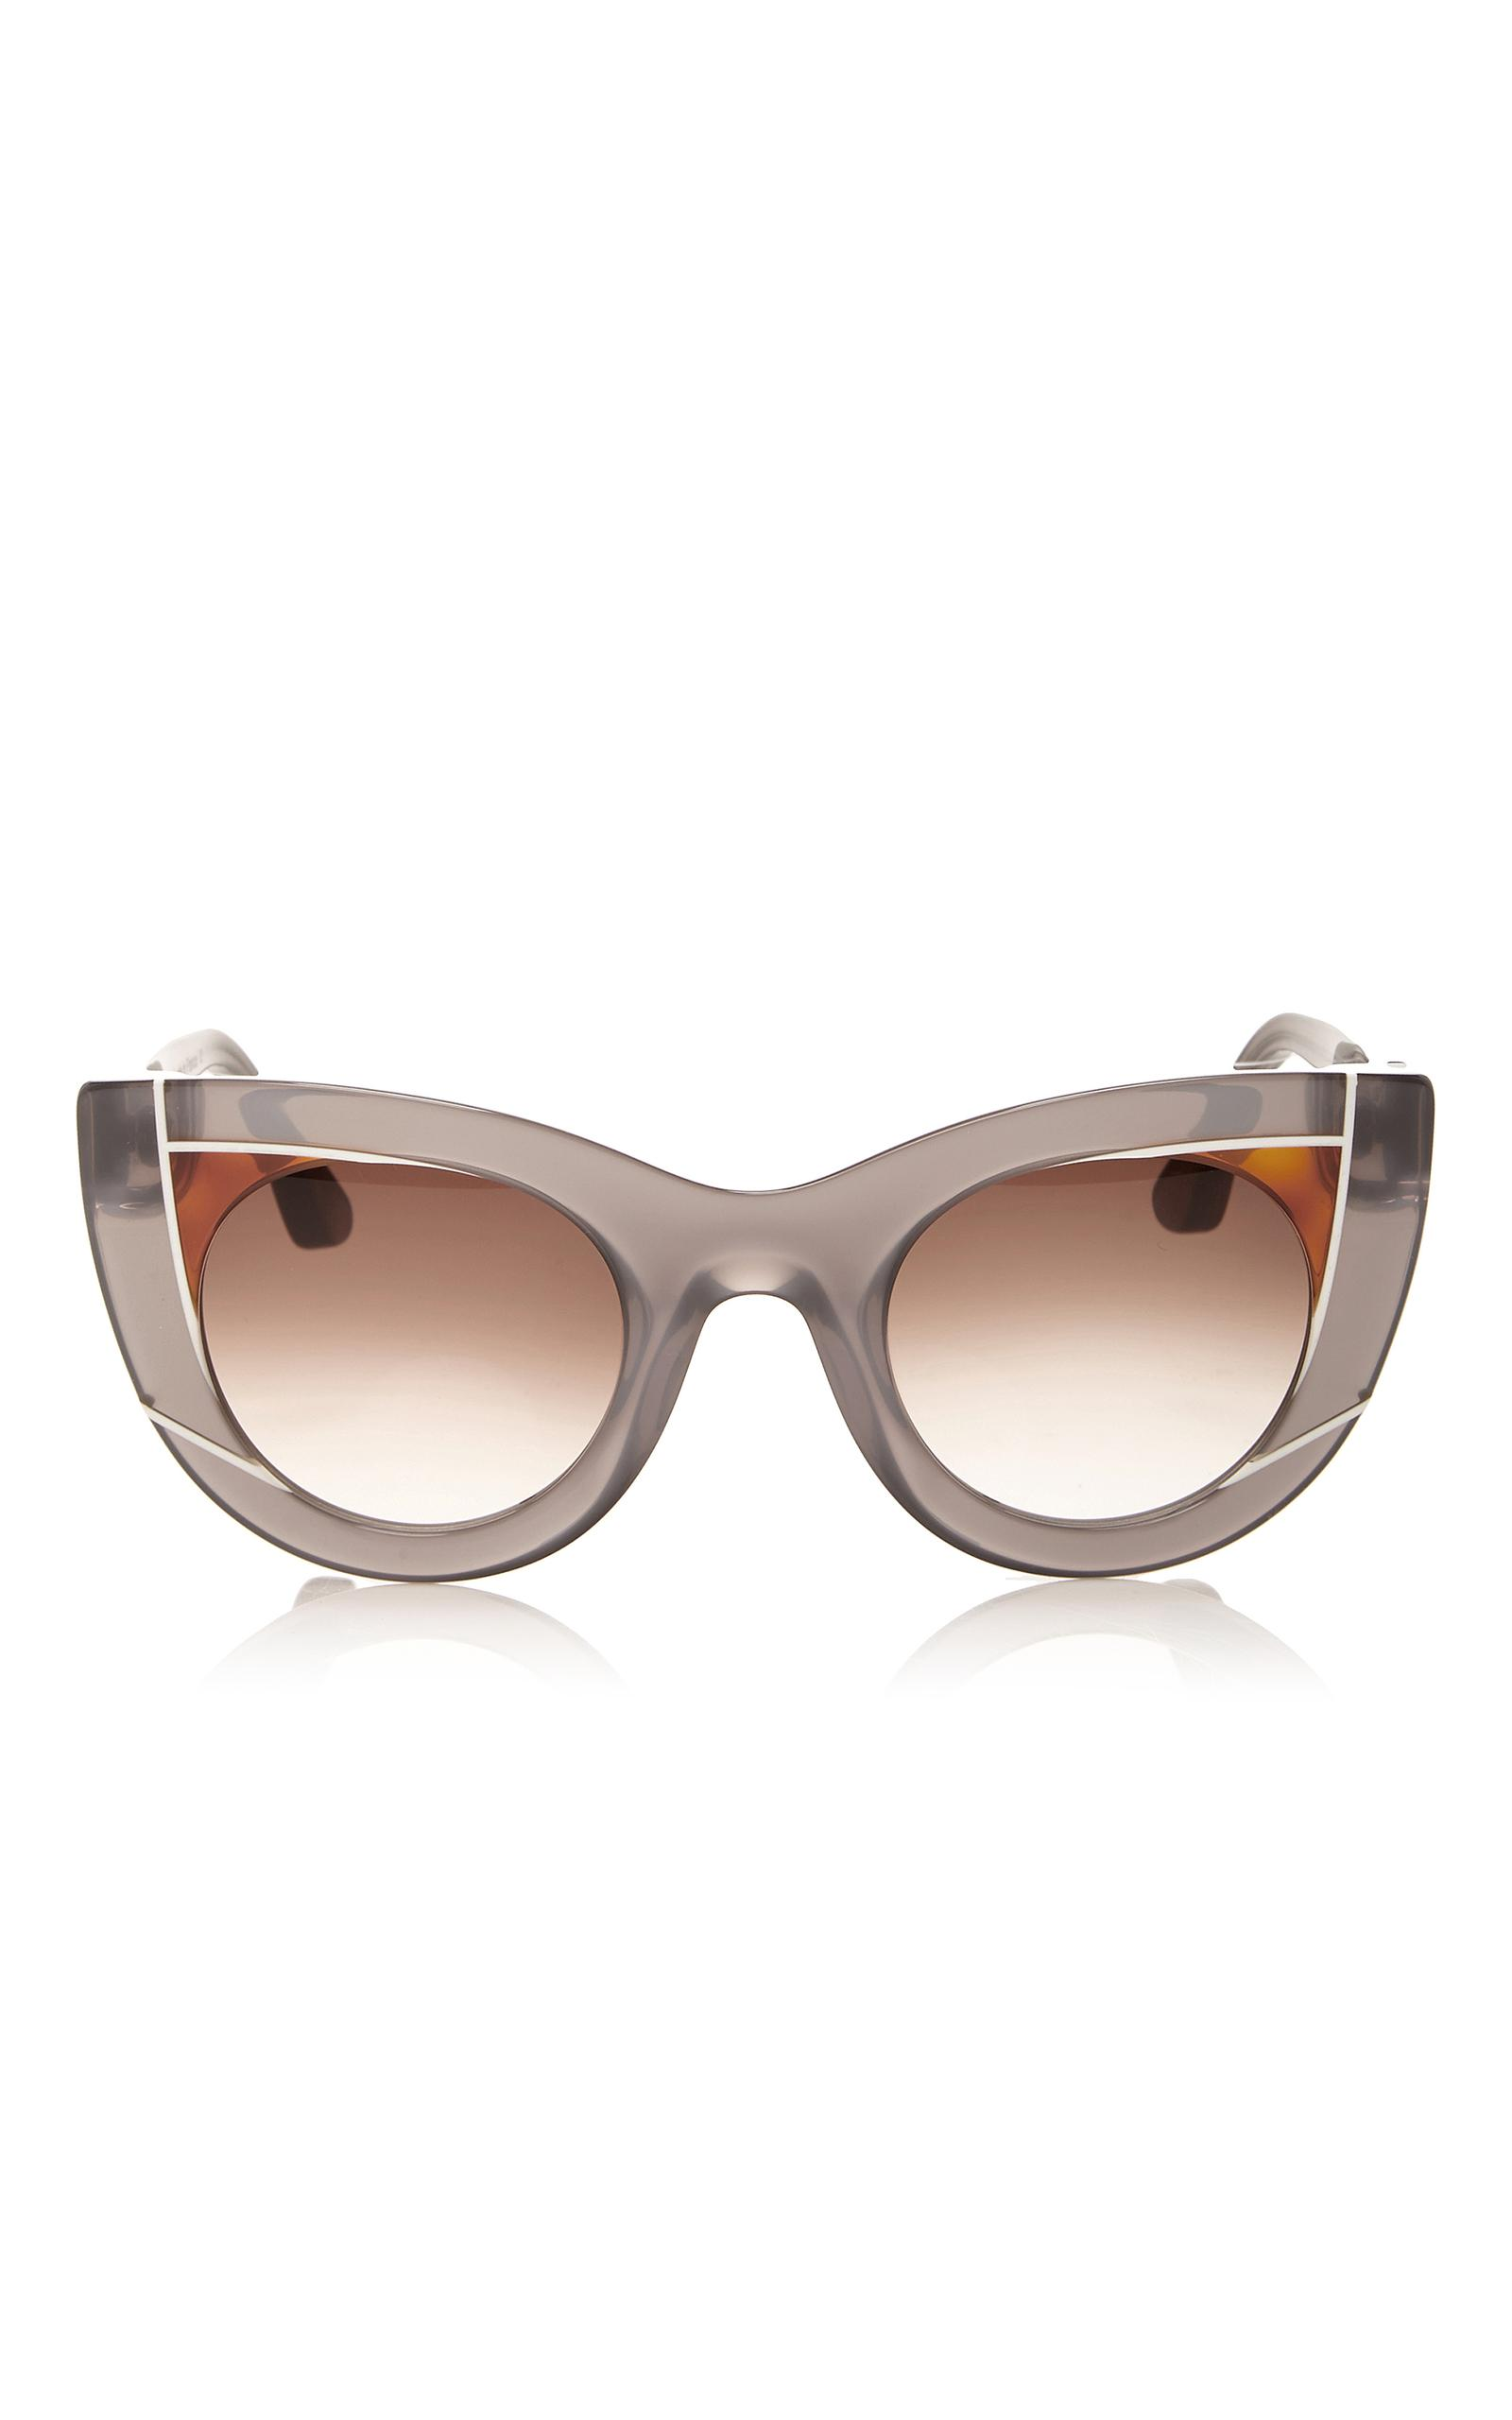 92bb0a3561e Thierry Lasry Wavvvy Sunglasses In Grey Brown Gradient